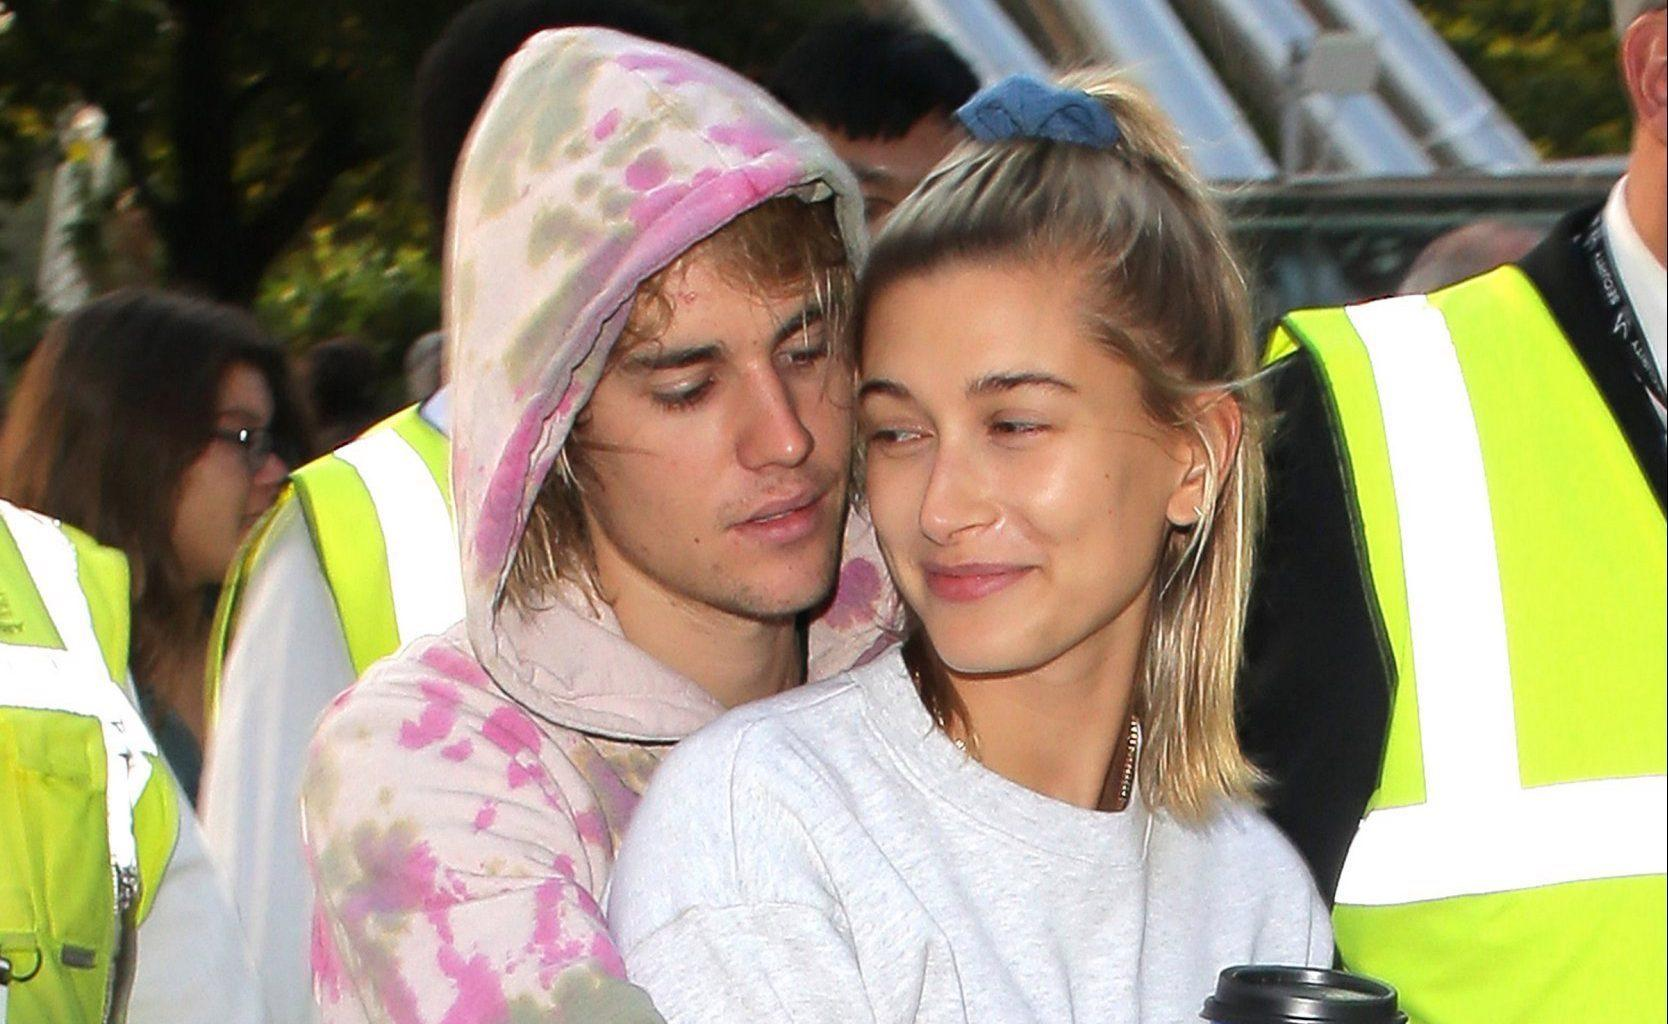 Hailey Baldwin Calls Out Critics Of Her Marriage With Justin Bieber